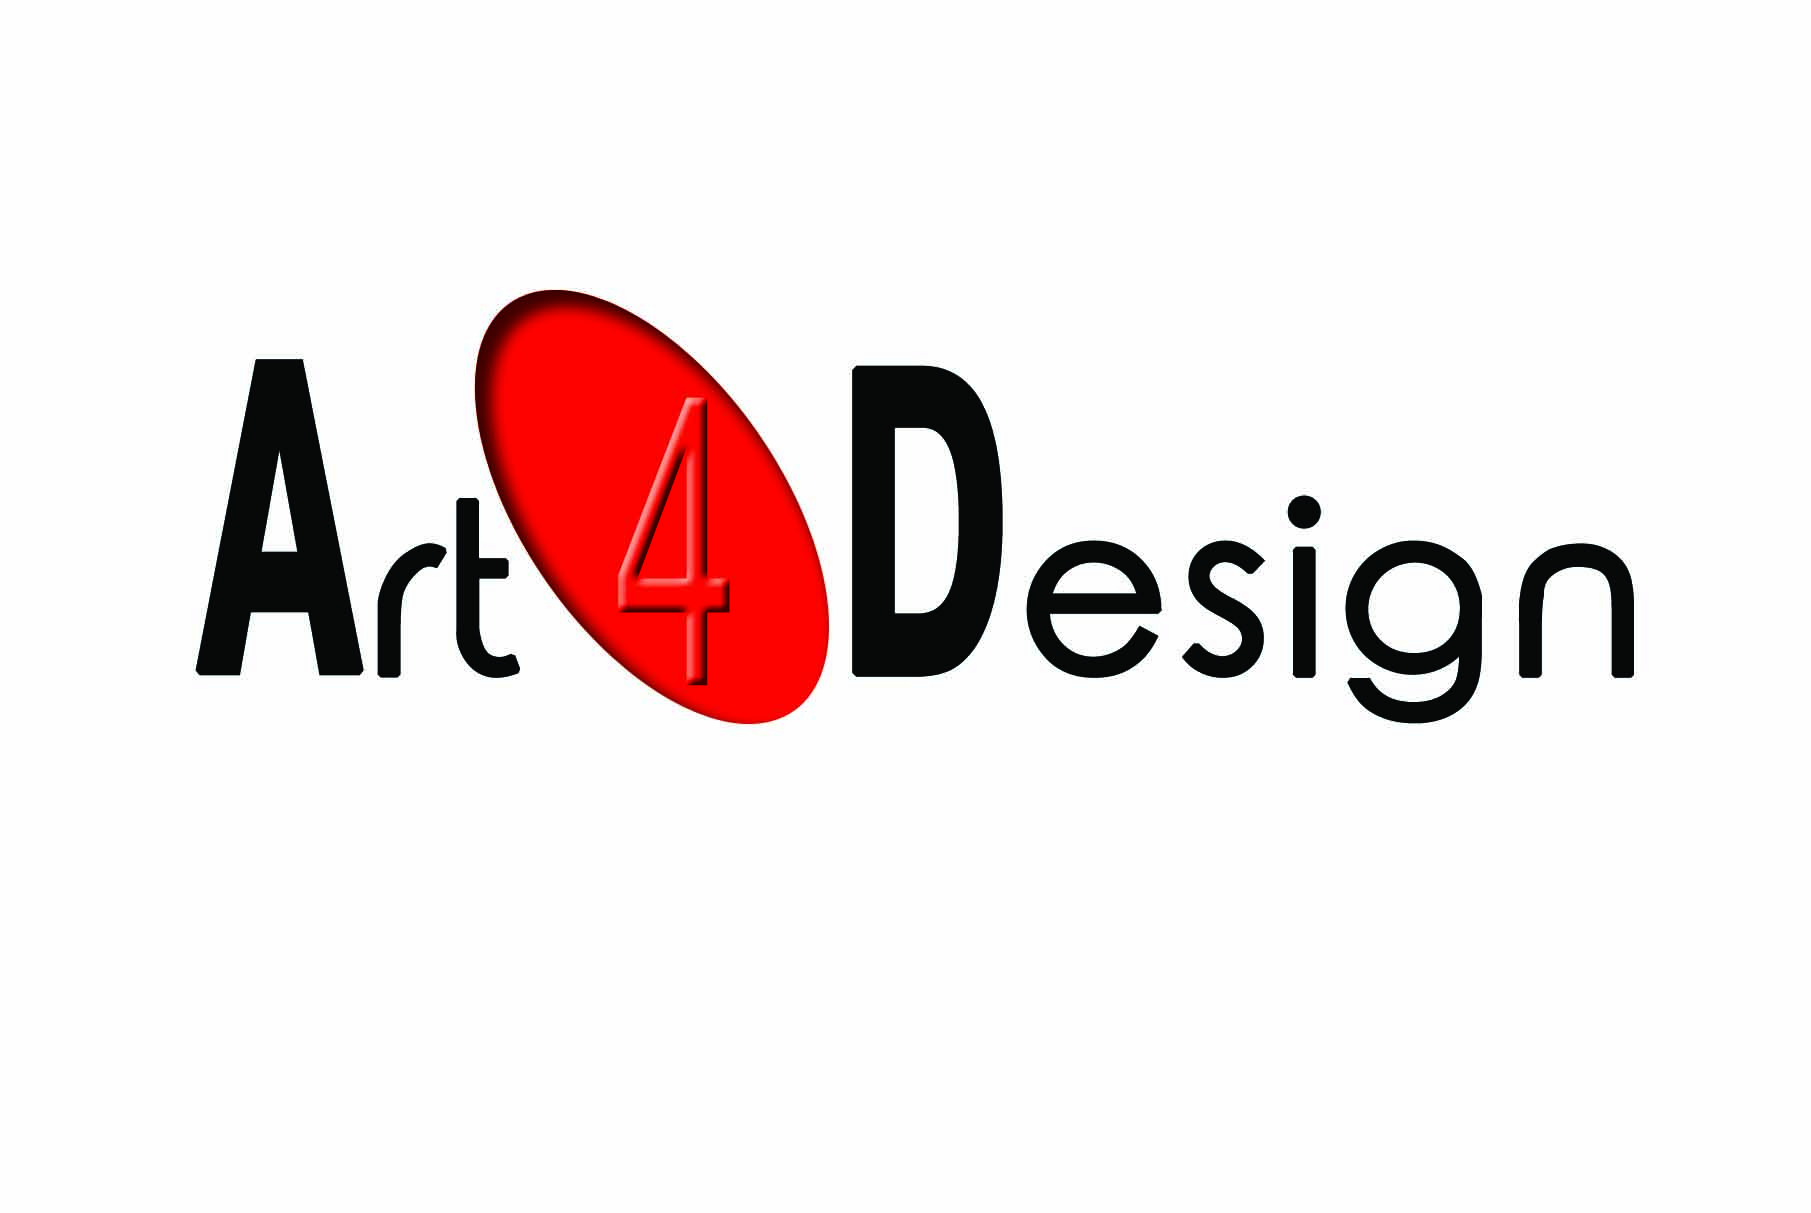 Art for Design